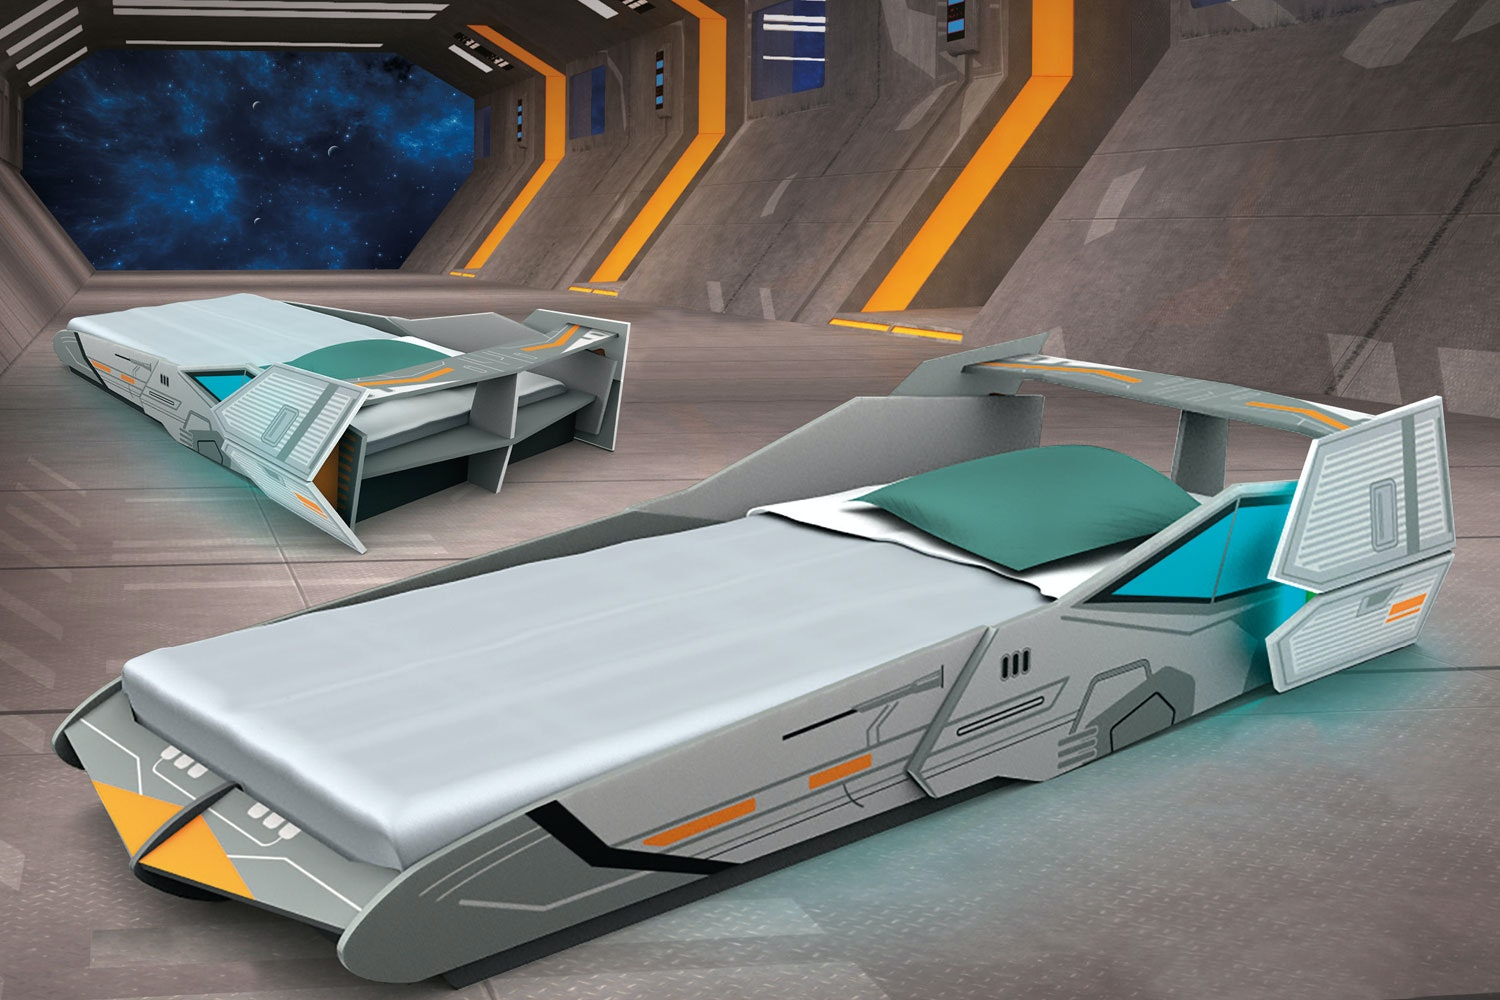 Galactic Starship Bed Frame